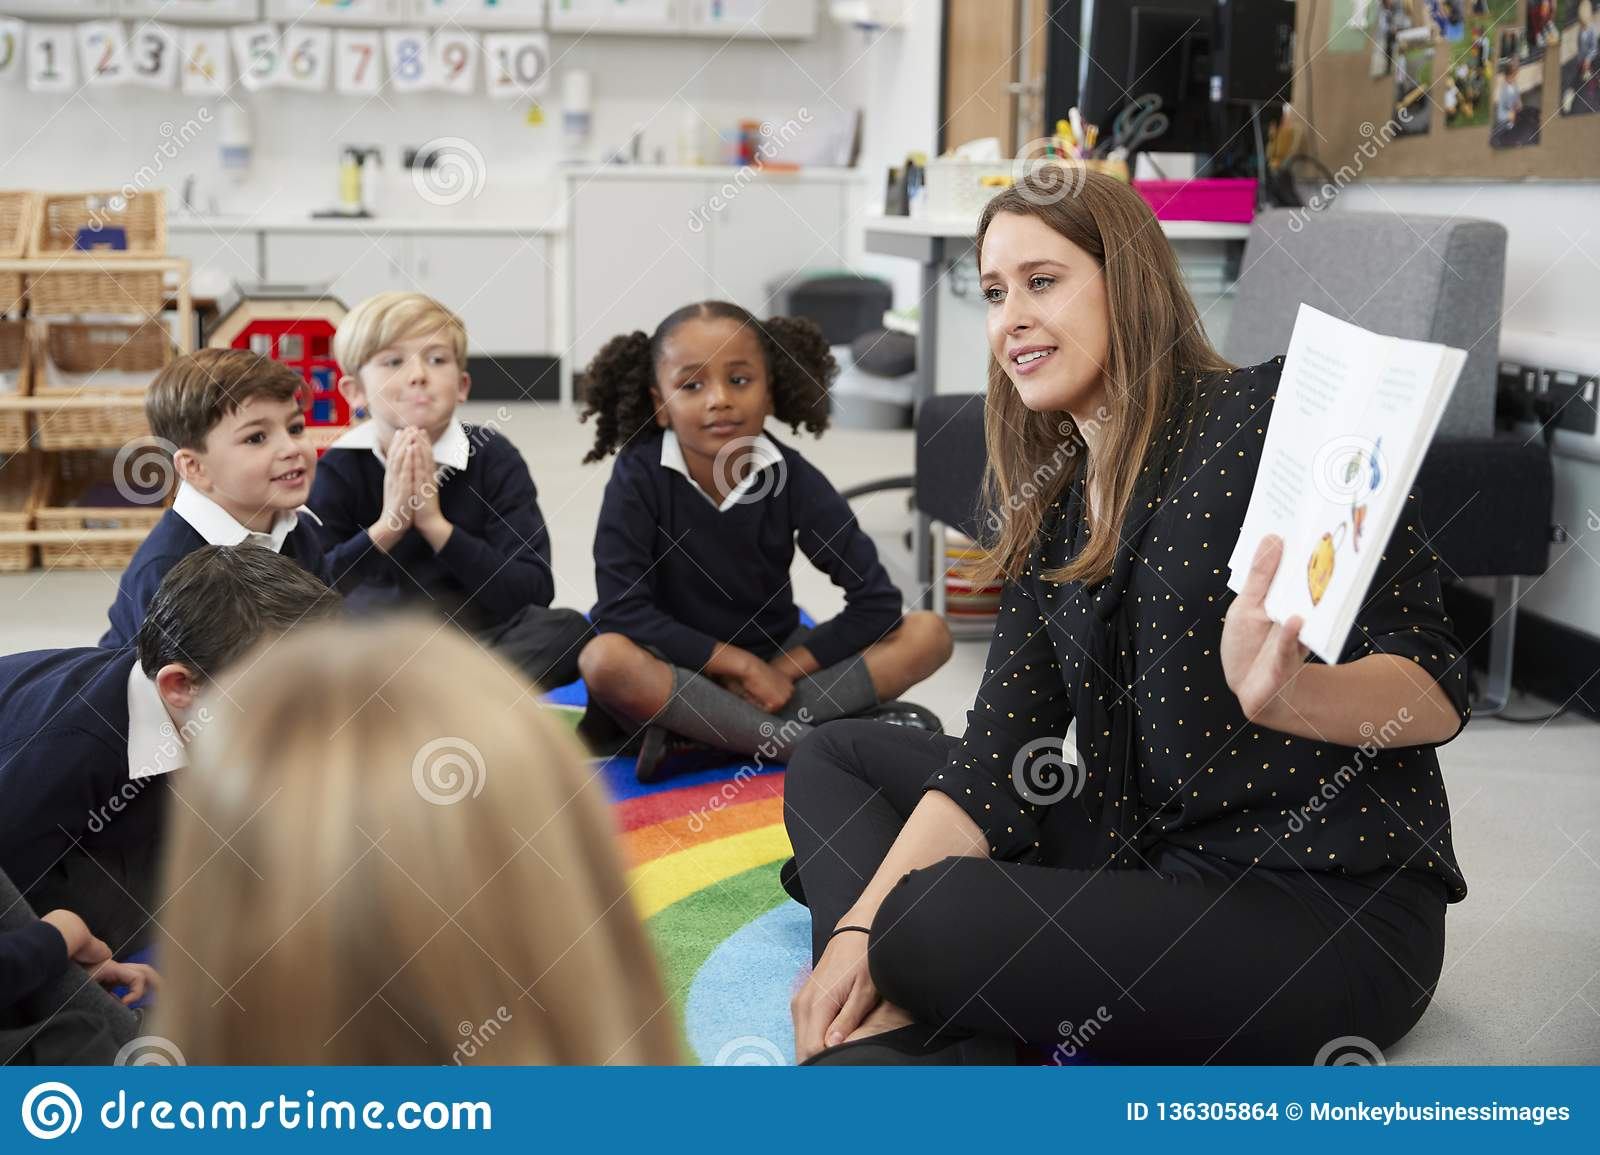 Primary school children sitting on the floor in the classroom with their teacher holding up a book to show them, selective focus